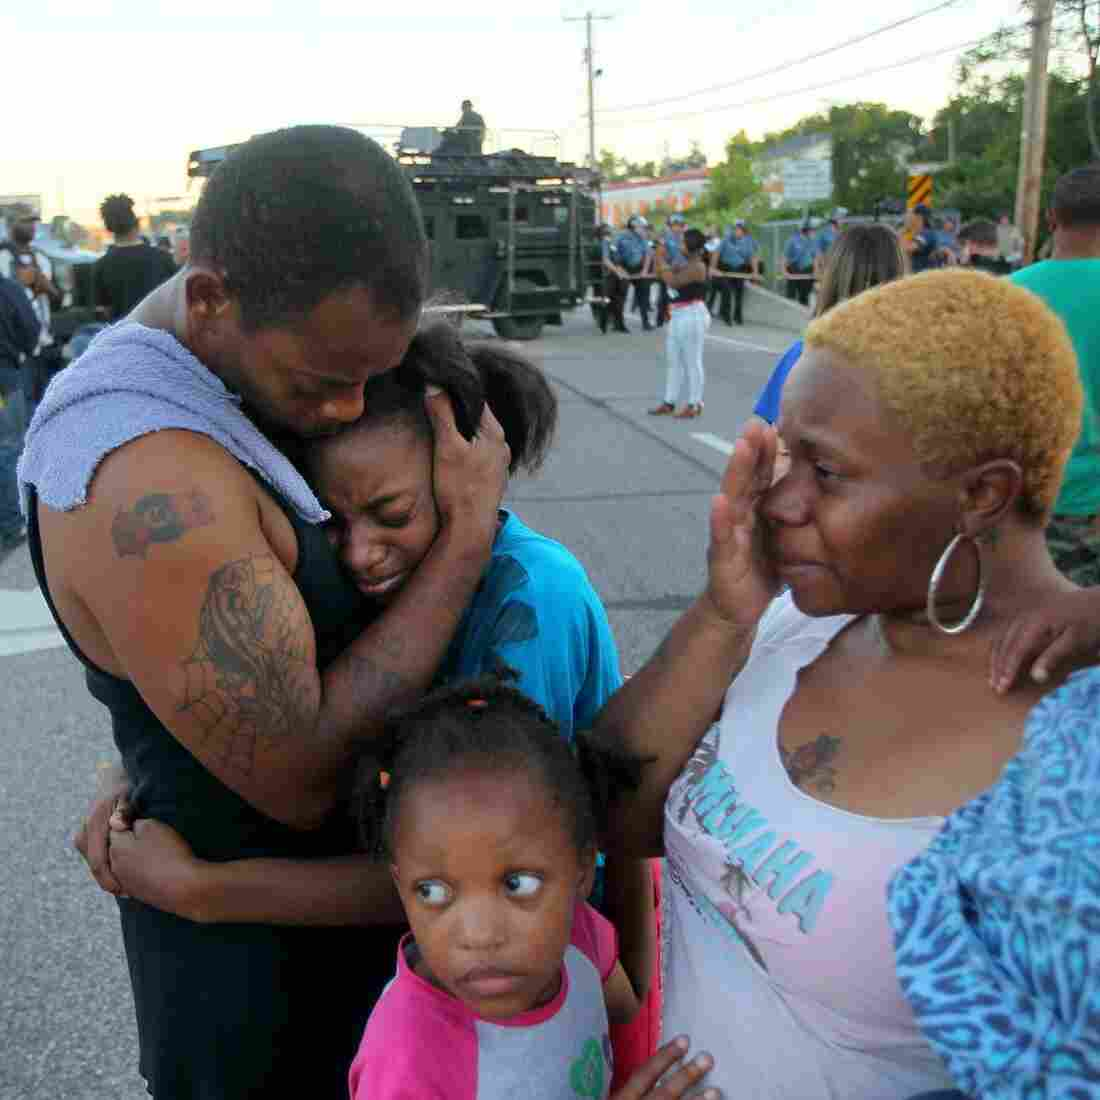 """""""I'm out here to stand for my children and their future,"""" said Terrell Williams El, who hugged his daughter while standing with his wife and two daughters near the QuickTrip in Ferguson, Mo., Wednesday. Several other residents say they've often felt harassed by police."""